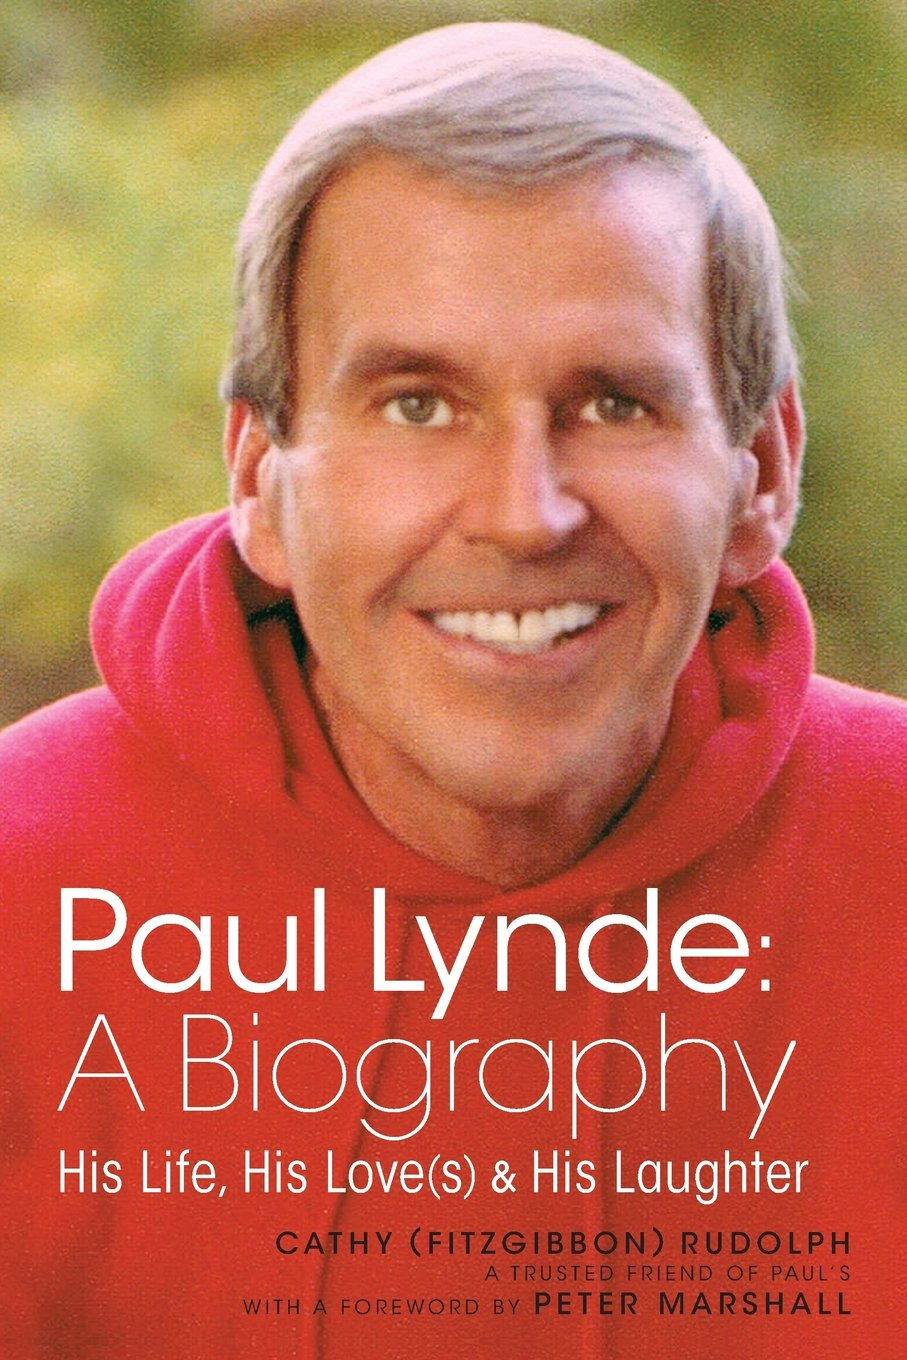 paul lynde - biography